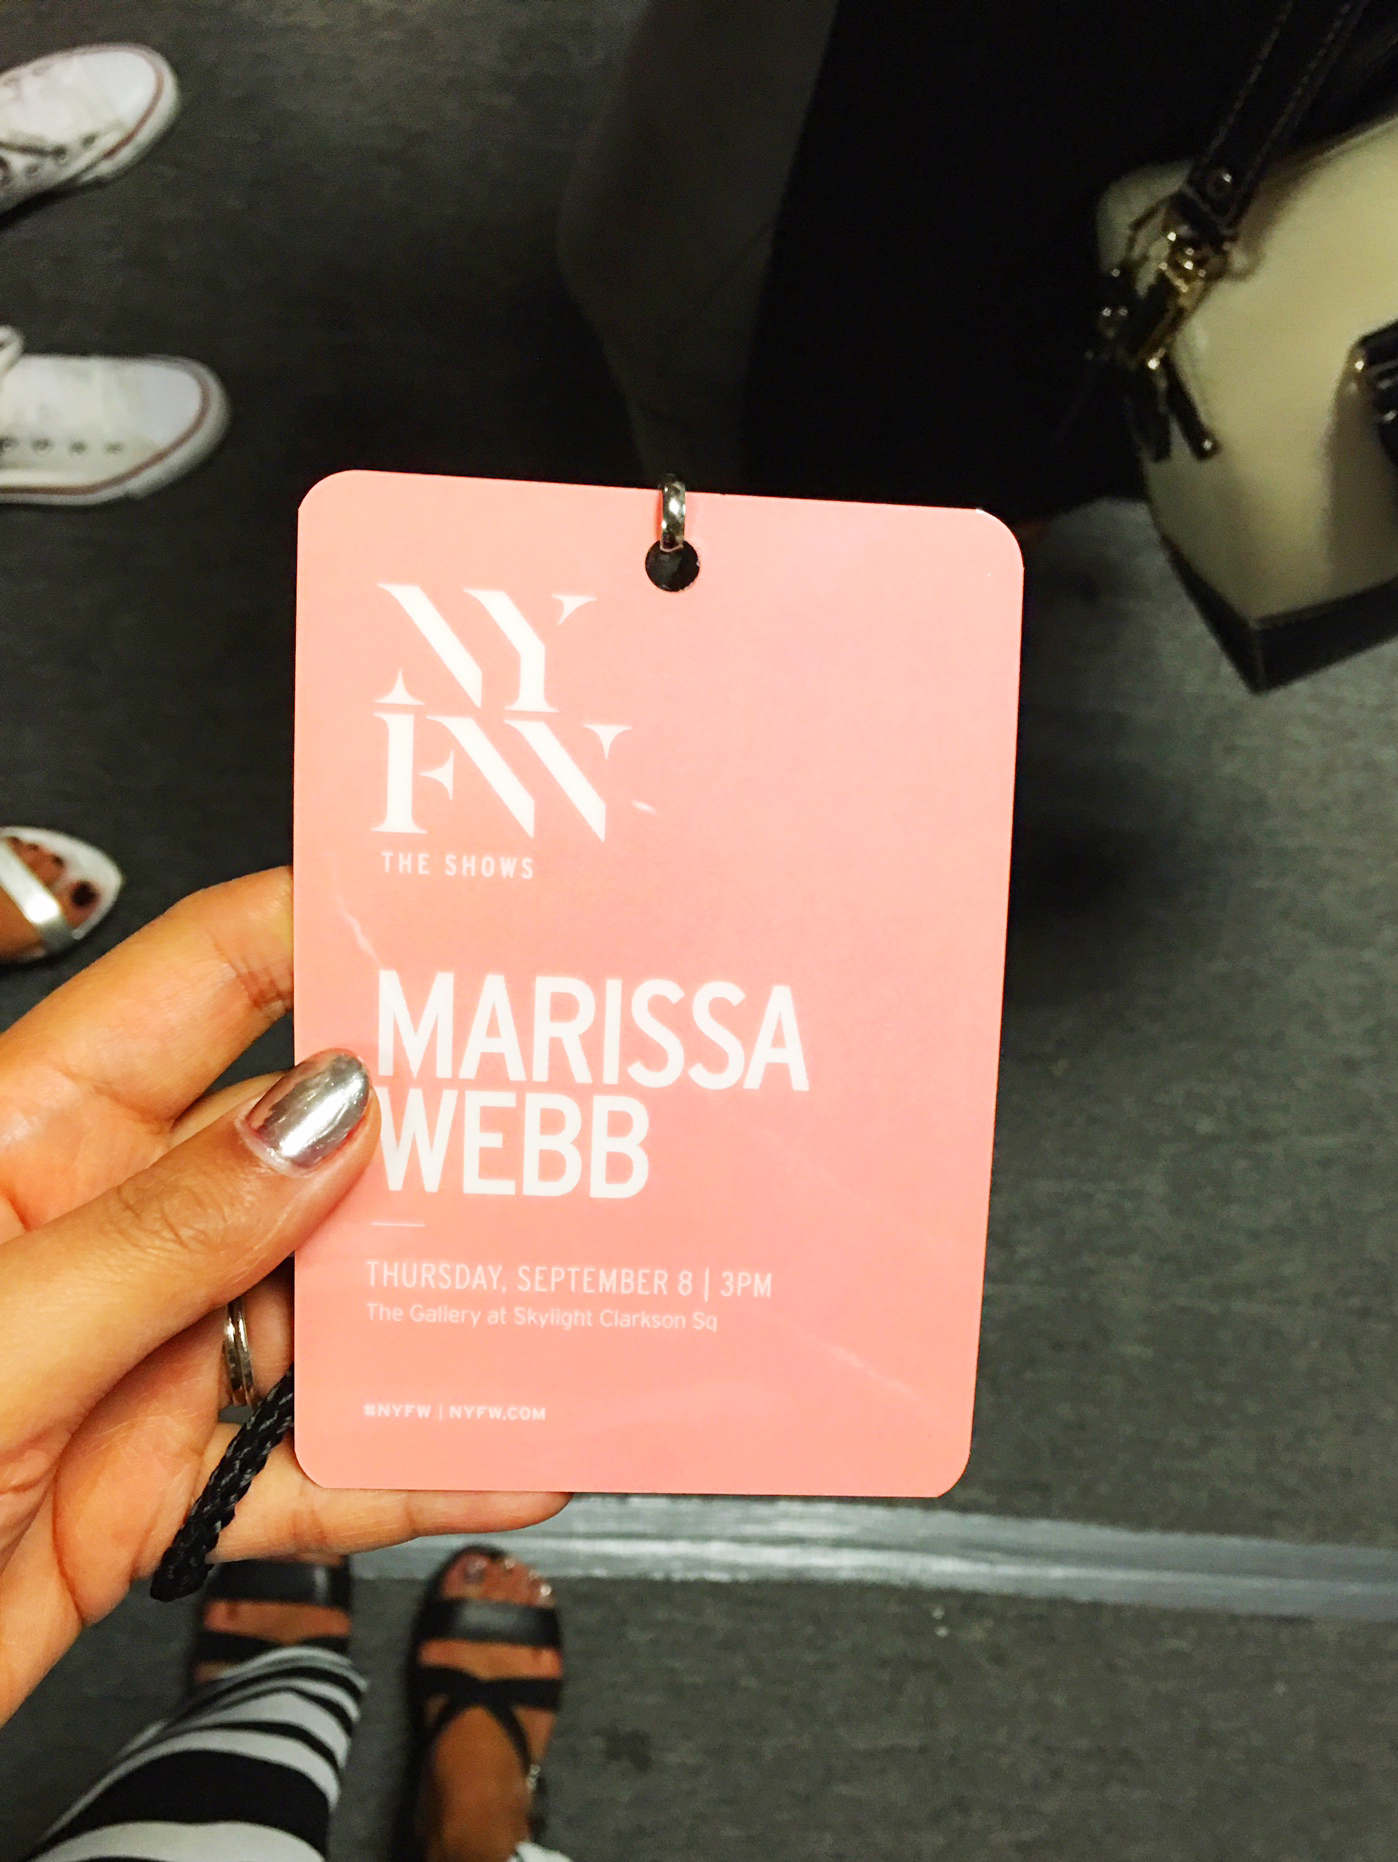 Backstage badge is so pretty!